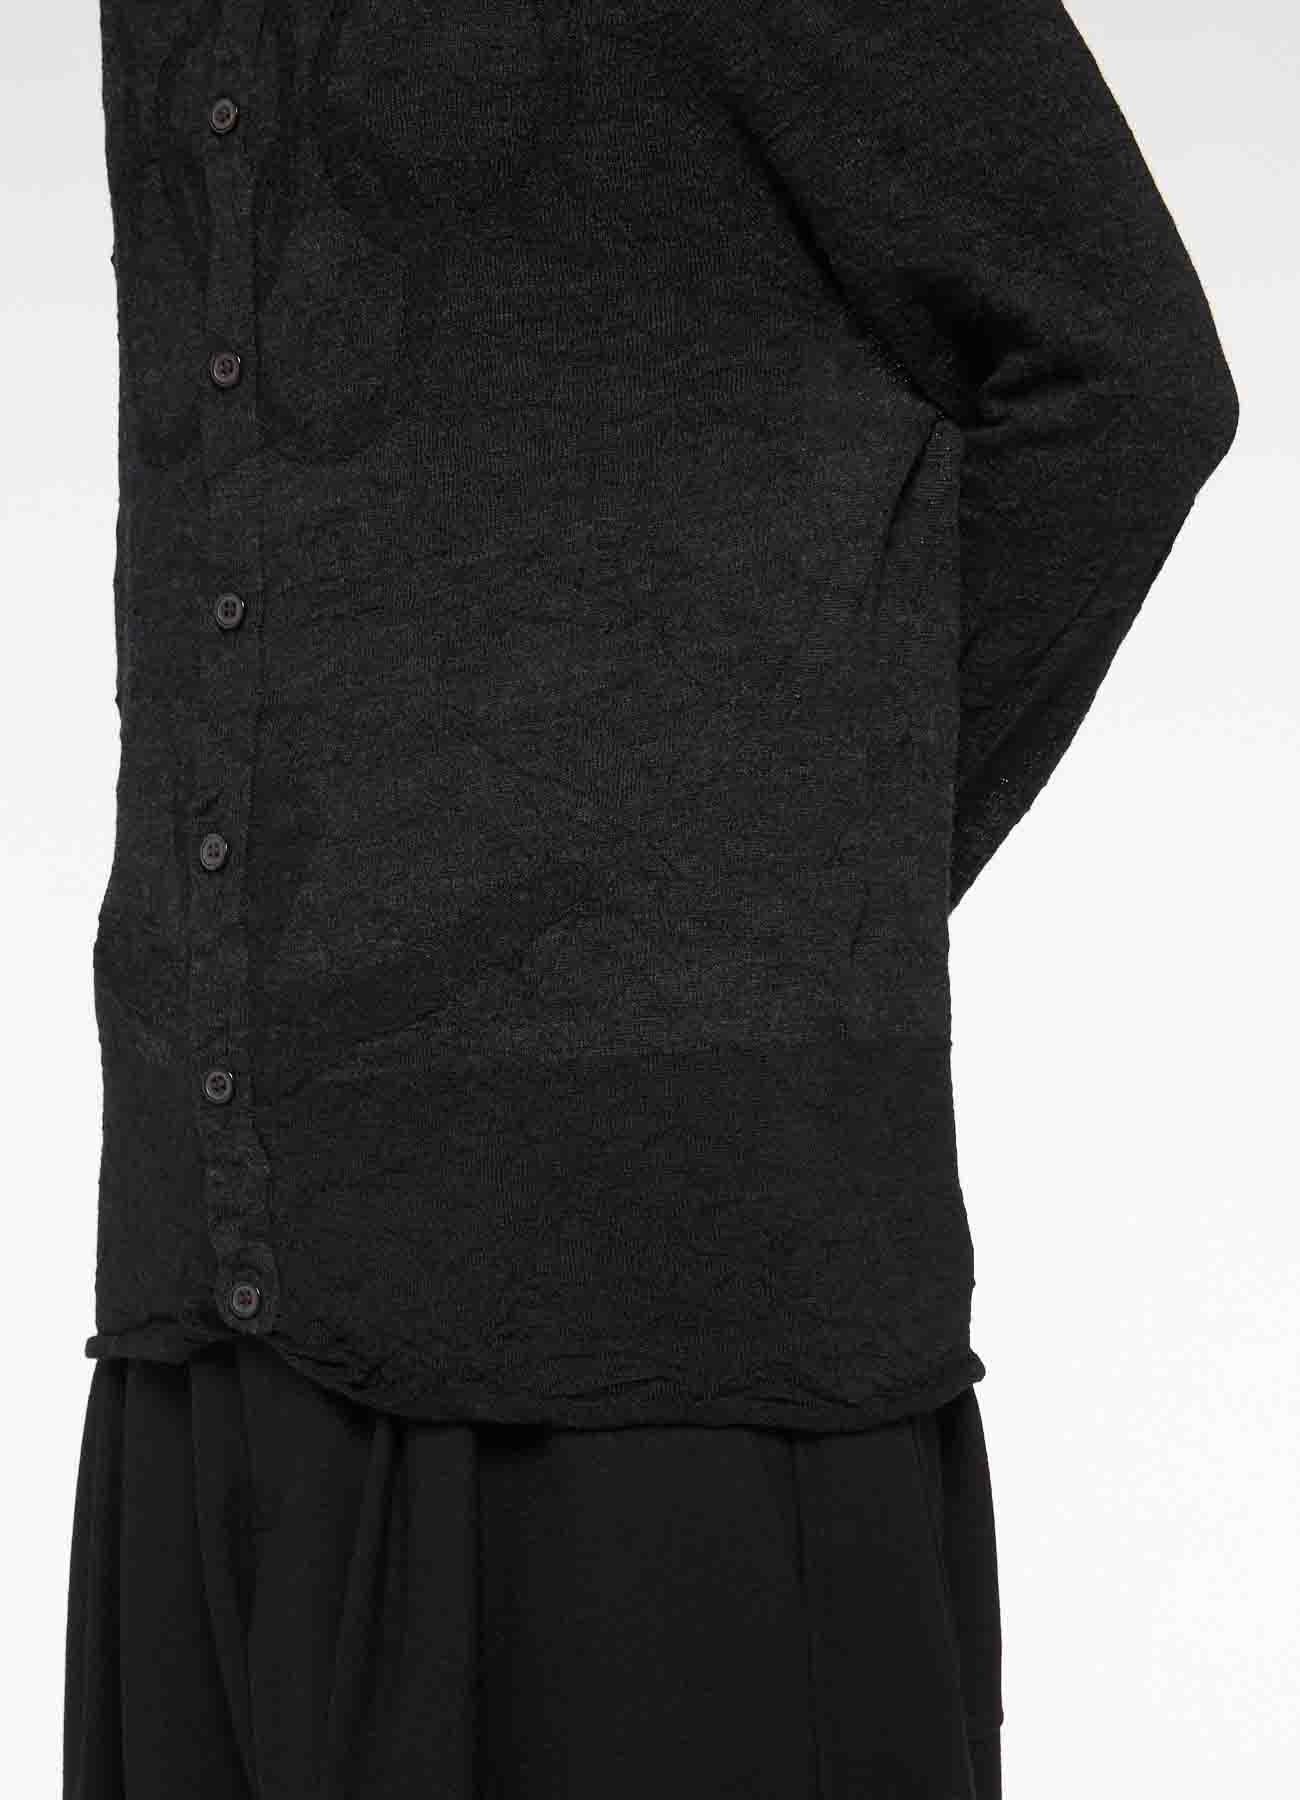 LINKS WRINKLE OFF NECK LONG SLEEVE BUTTON CARDIGAN